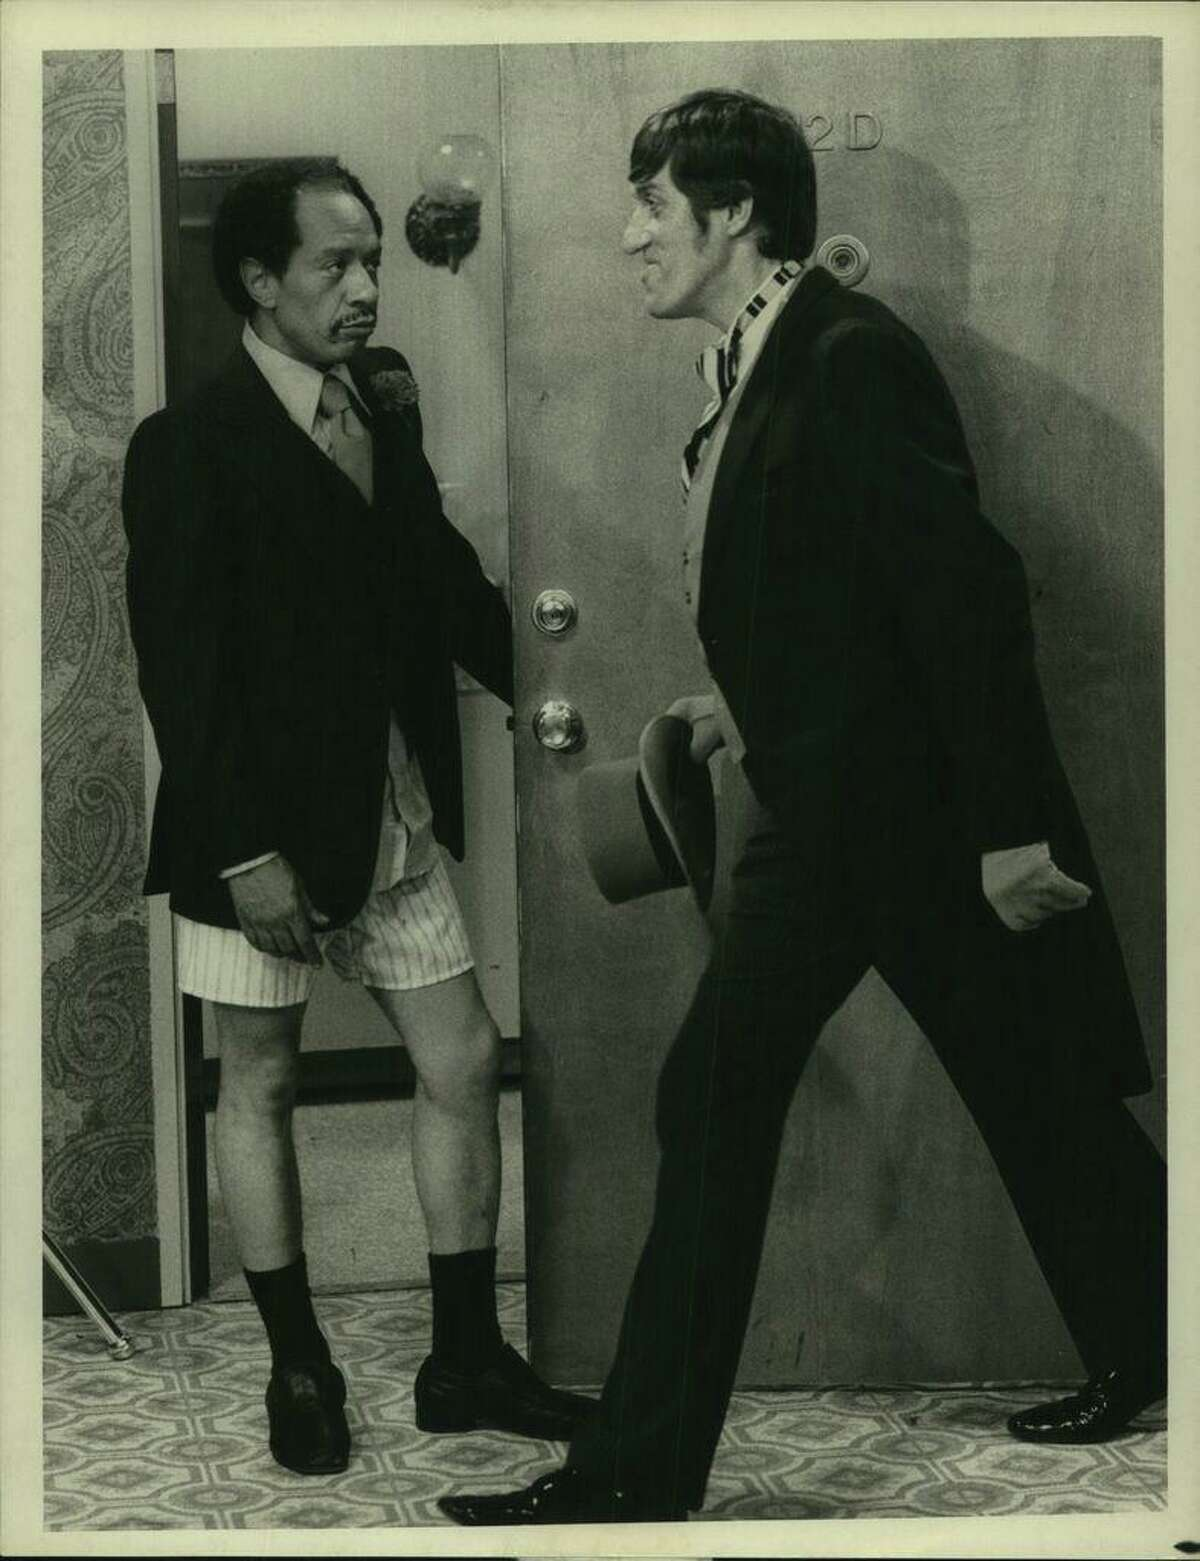 A scene from the 1970s situation-comedy